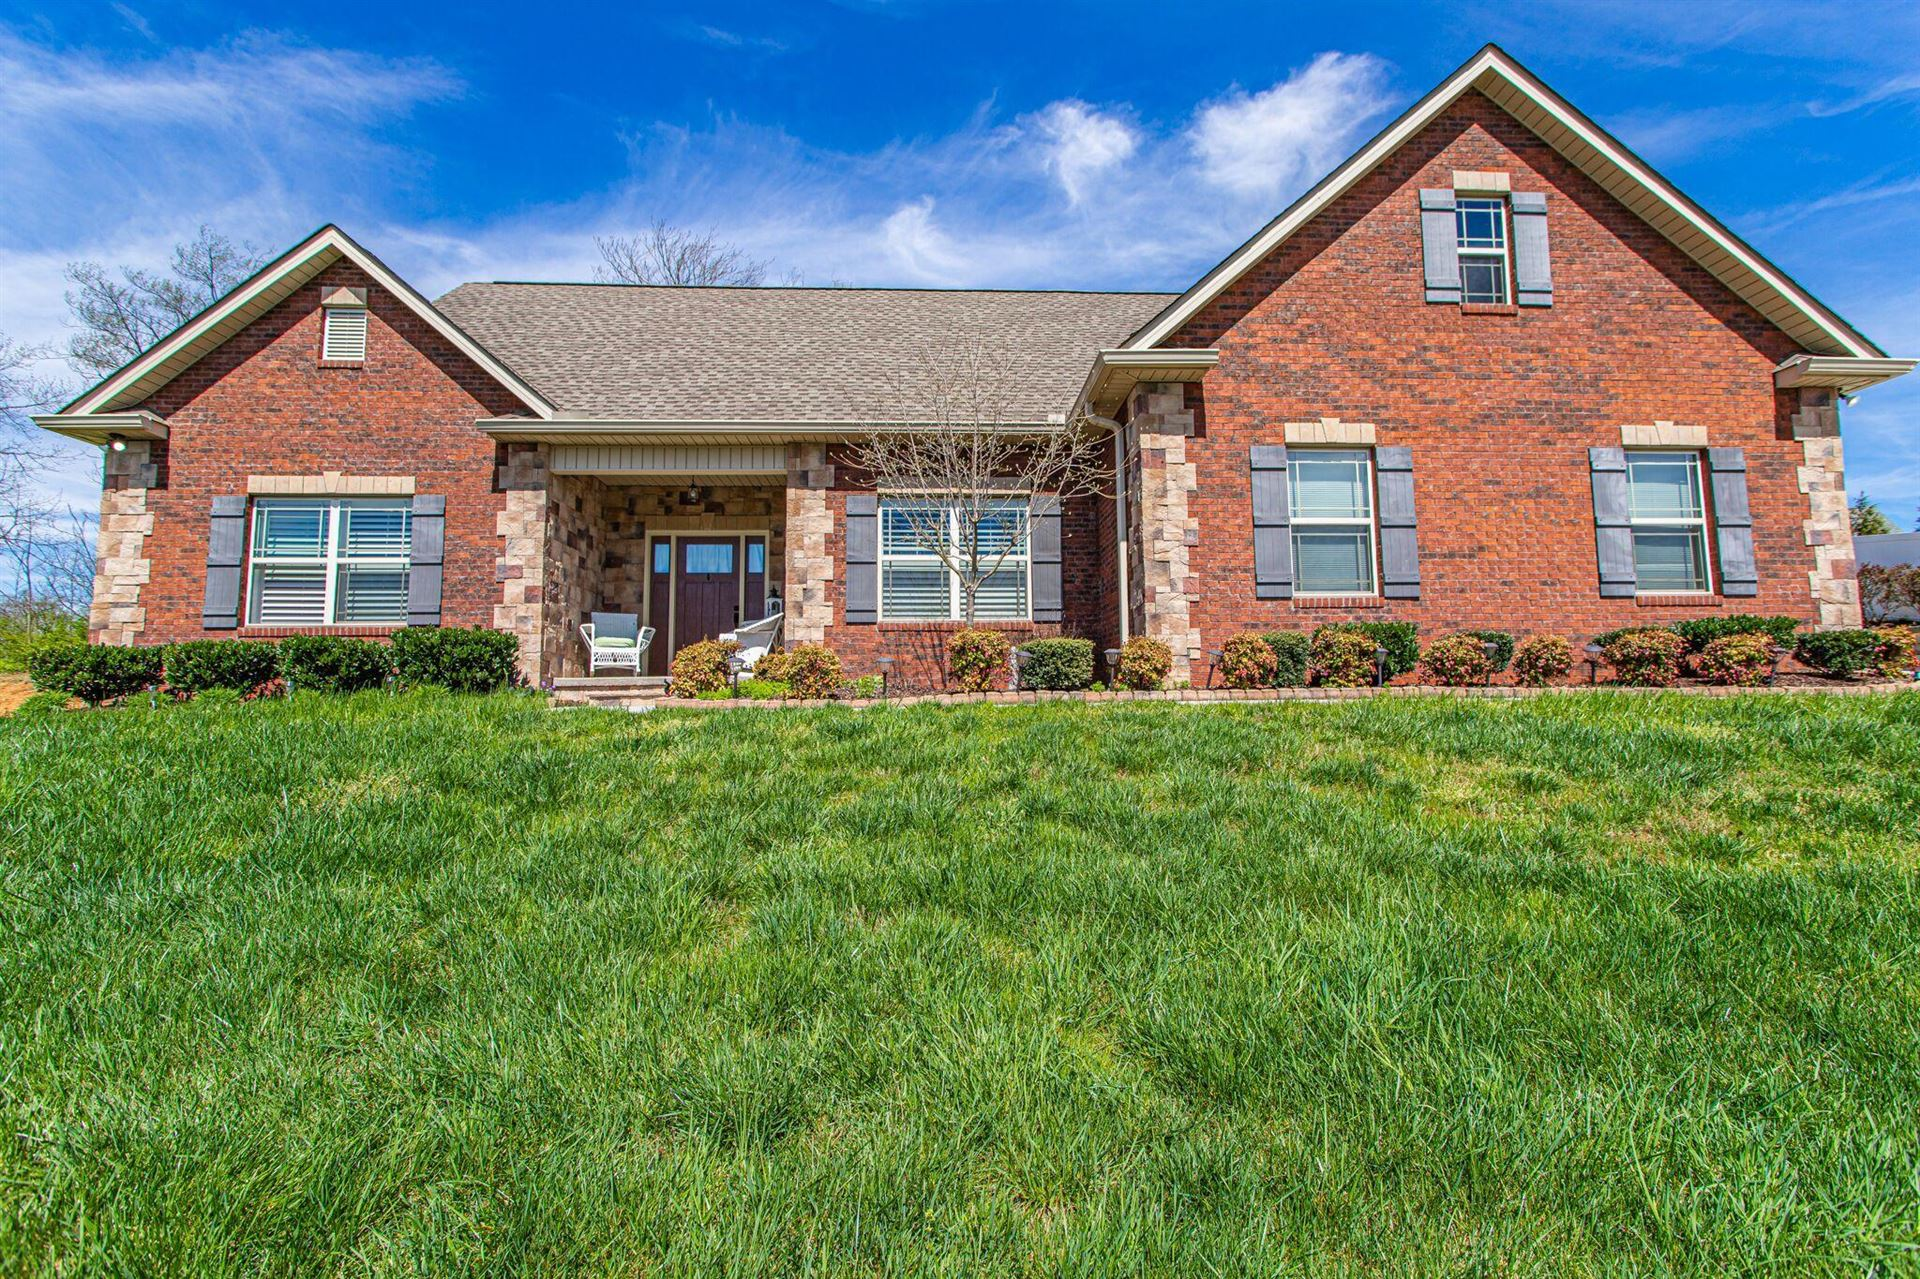 Photo of 2026 Country Brook Lane, Knoxville, TN 37921 (MLS # 1112503)